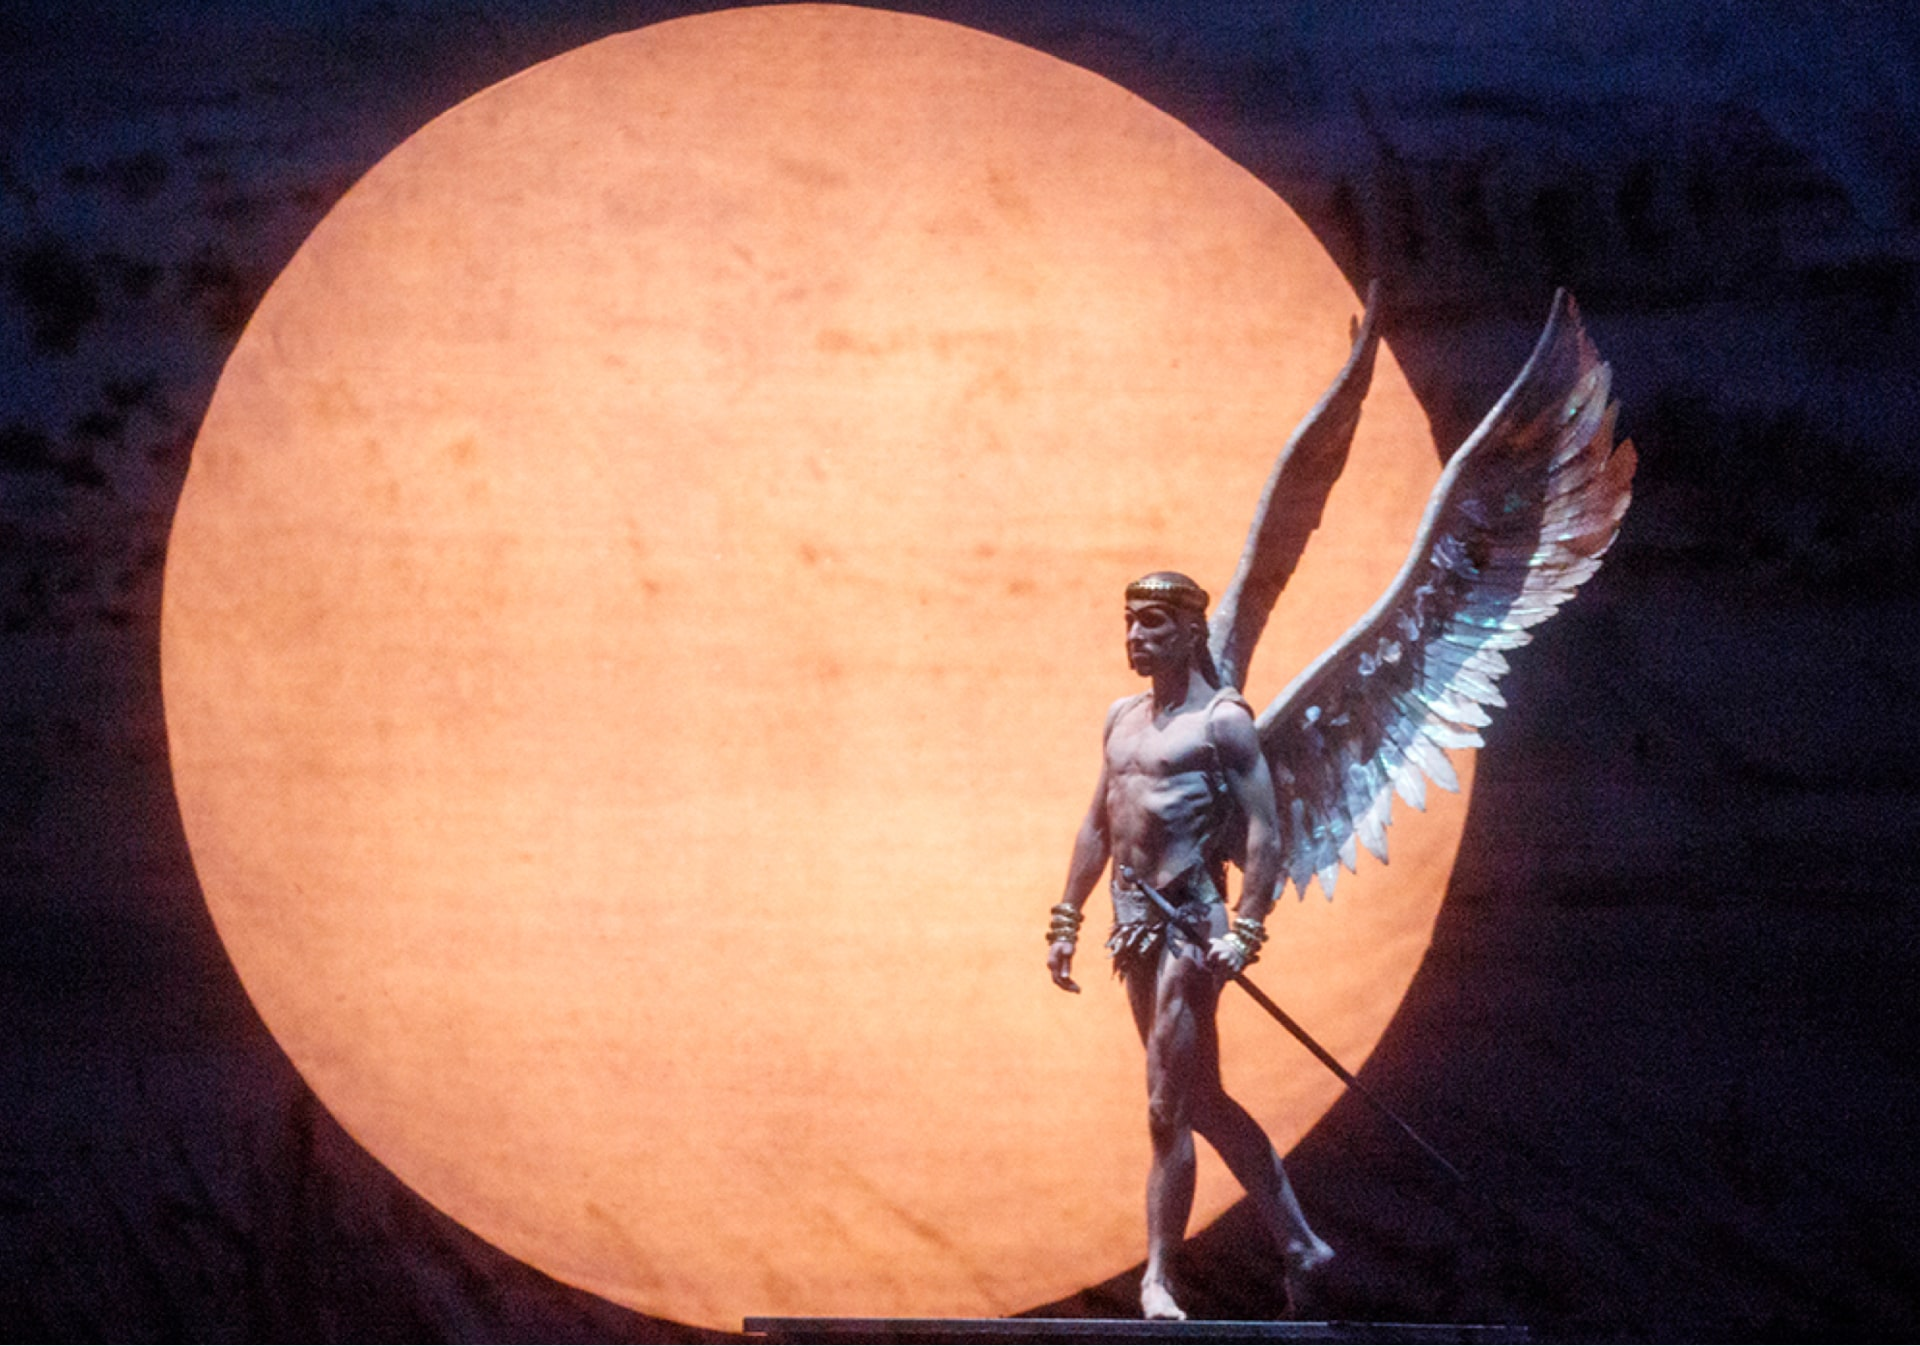 Bare-chested dancer with giant wings and sword stands in front of huge orange moon.